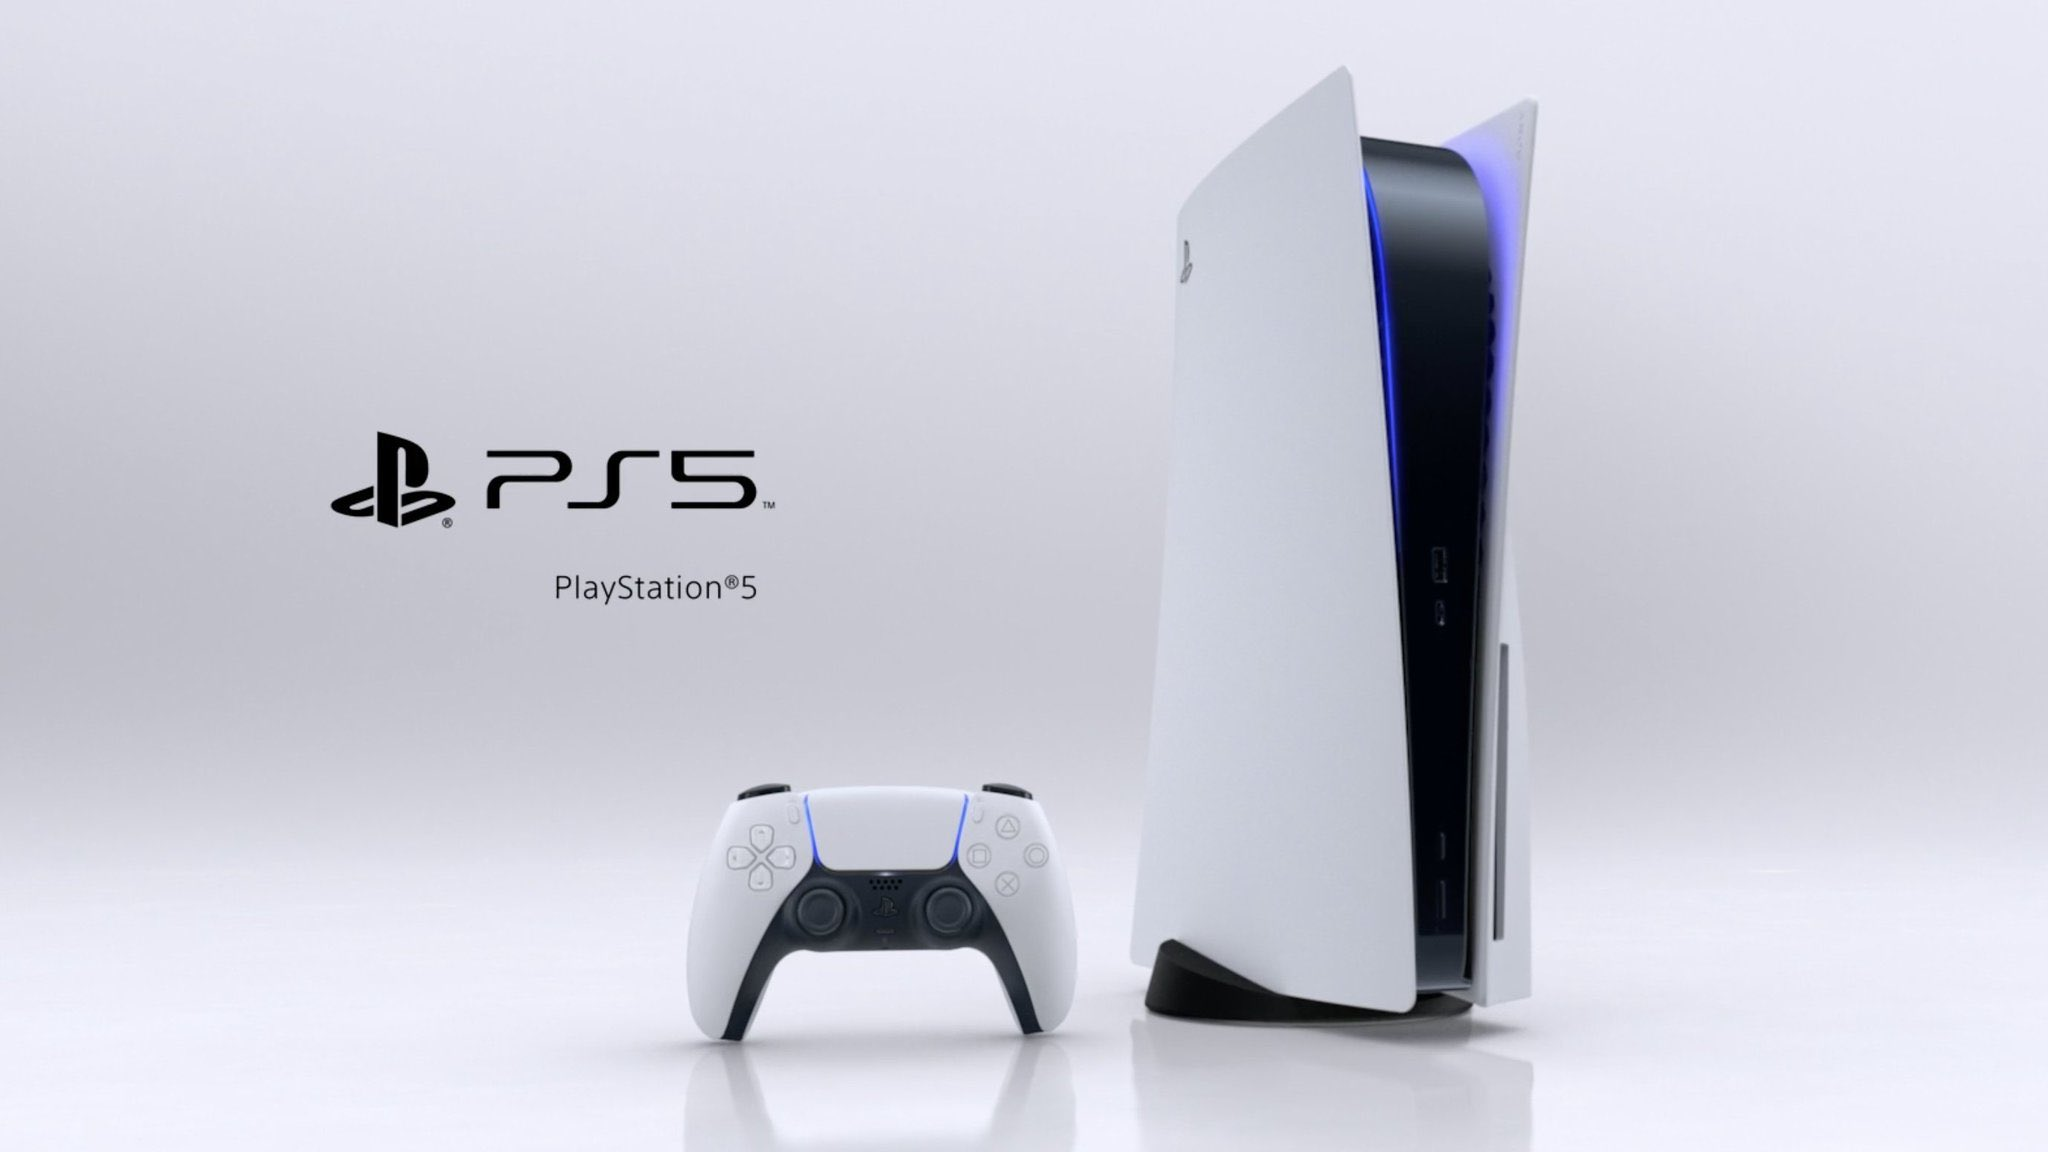 ps5 1 - PS5 Console Design+New Game Trailers Revealed